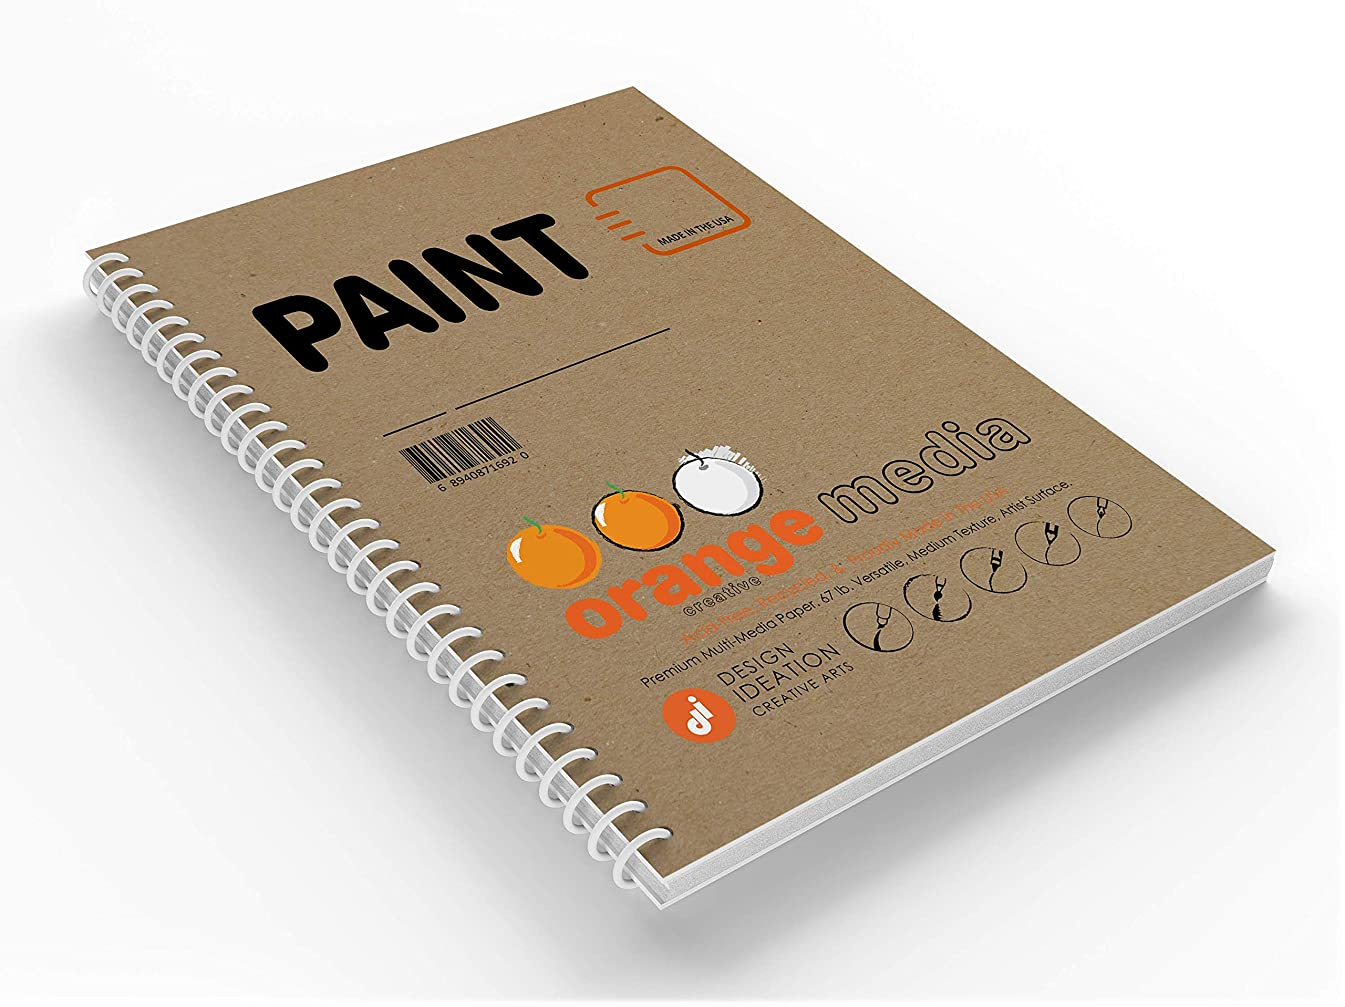 ORANGE WATERCOLOR : Premium Multi-Media Paper Watercolor Book for Pencil, Ink, Marker, Charcoal and Watercolor Paints. Great for Art, Design and Education. (8.5